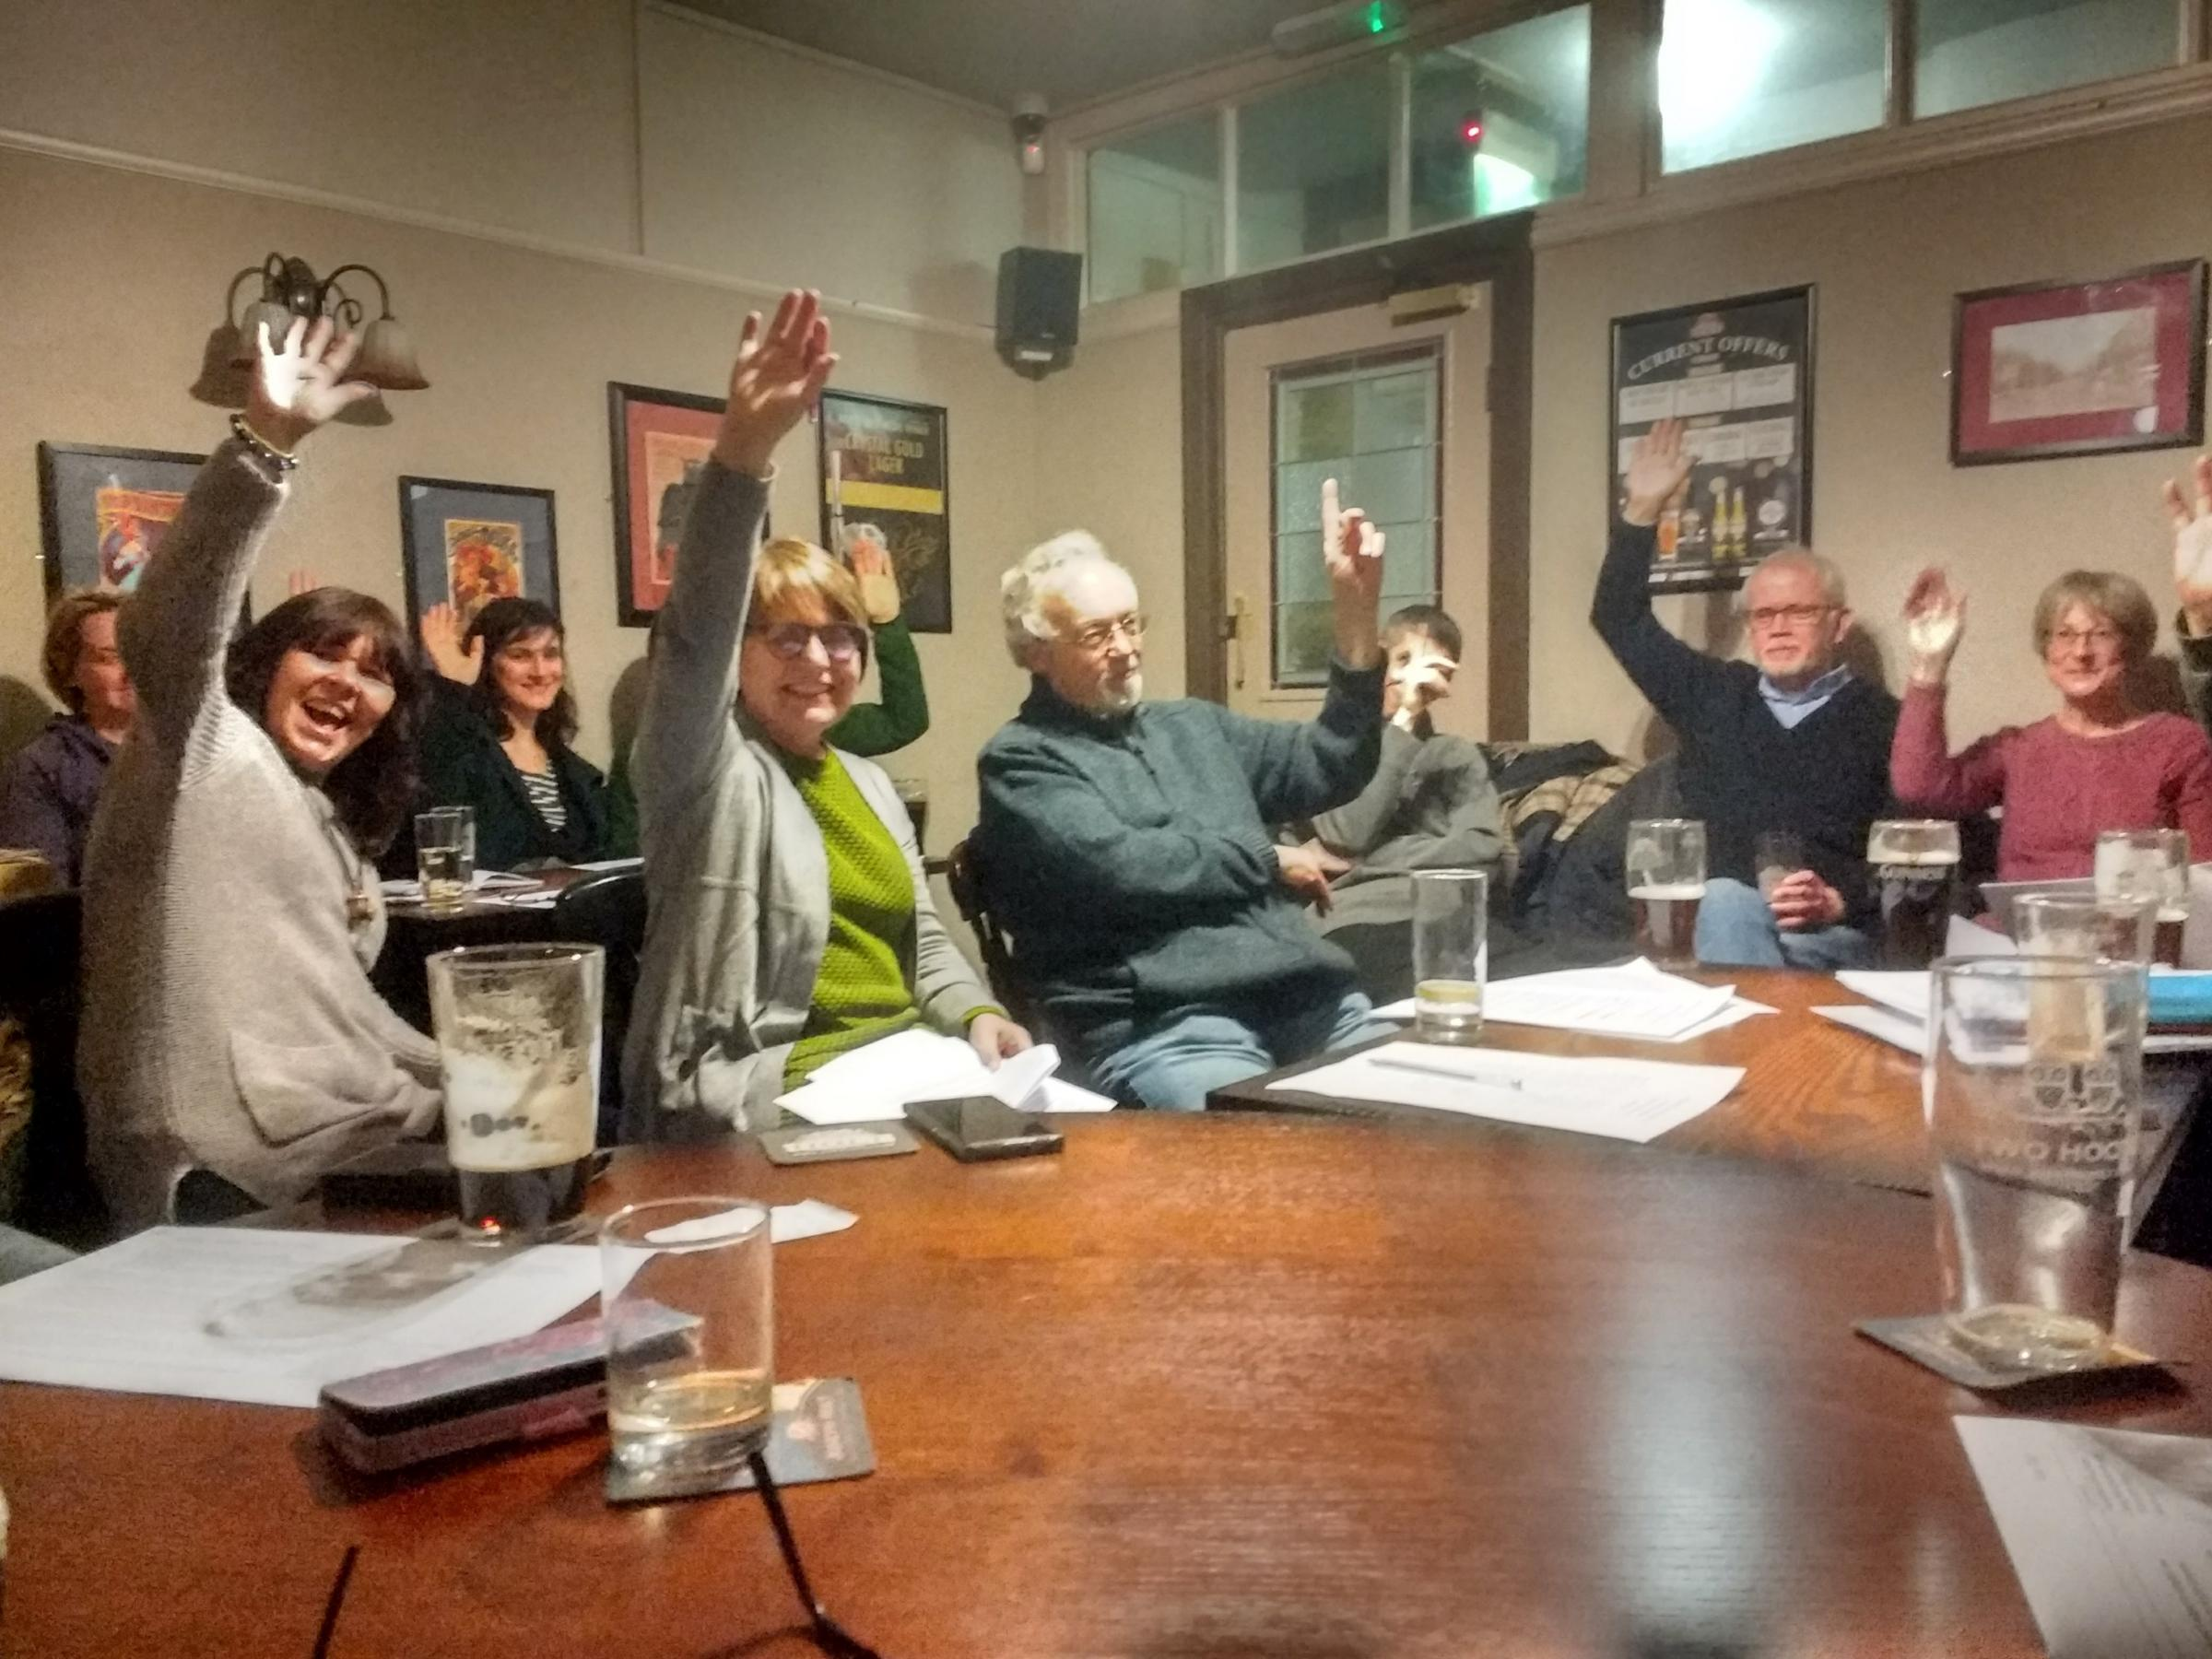 The Incredible Edible Prestwich board votes to change the group into a community benefit society